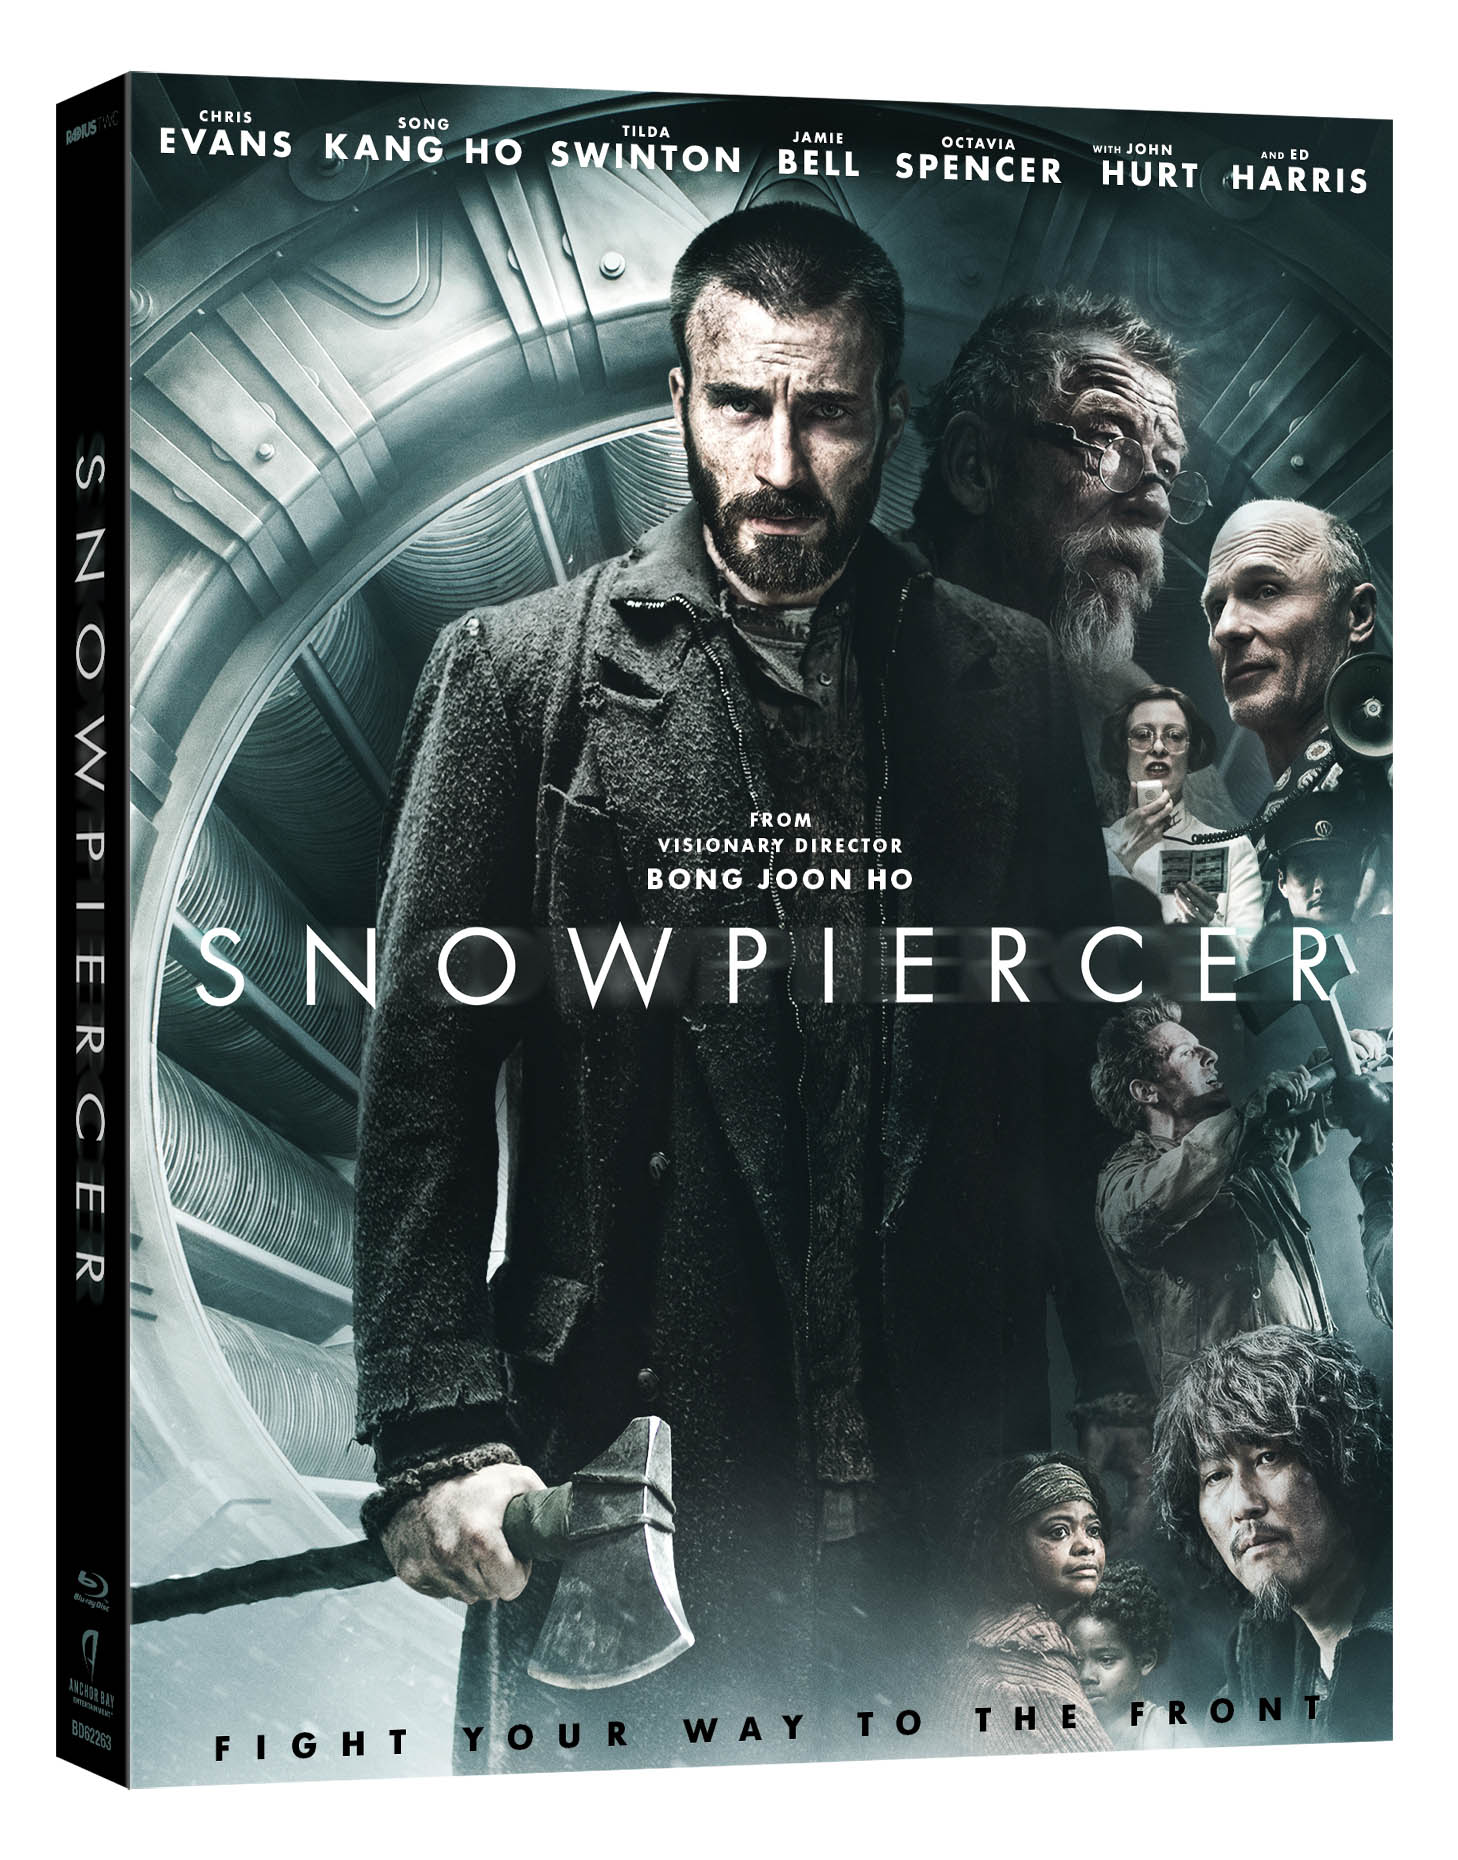 Snowpiercer Blu-ray Review